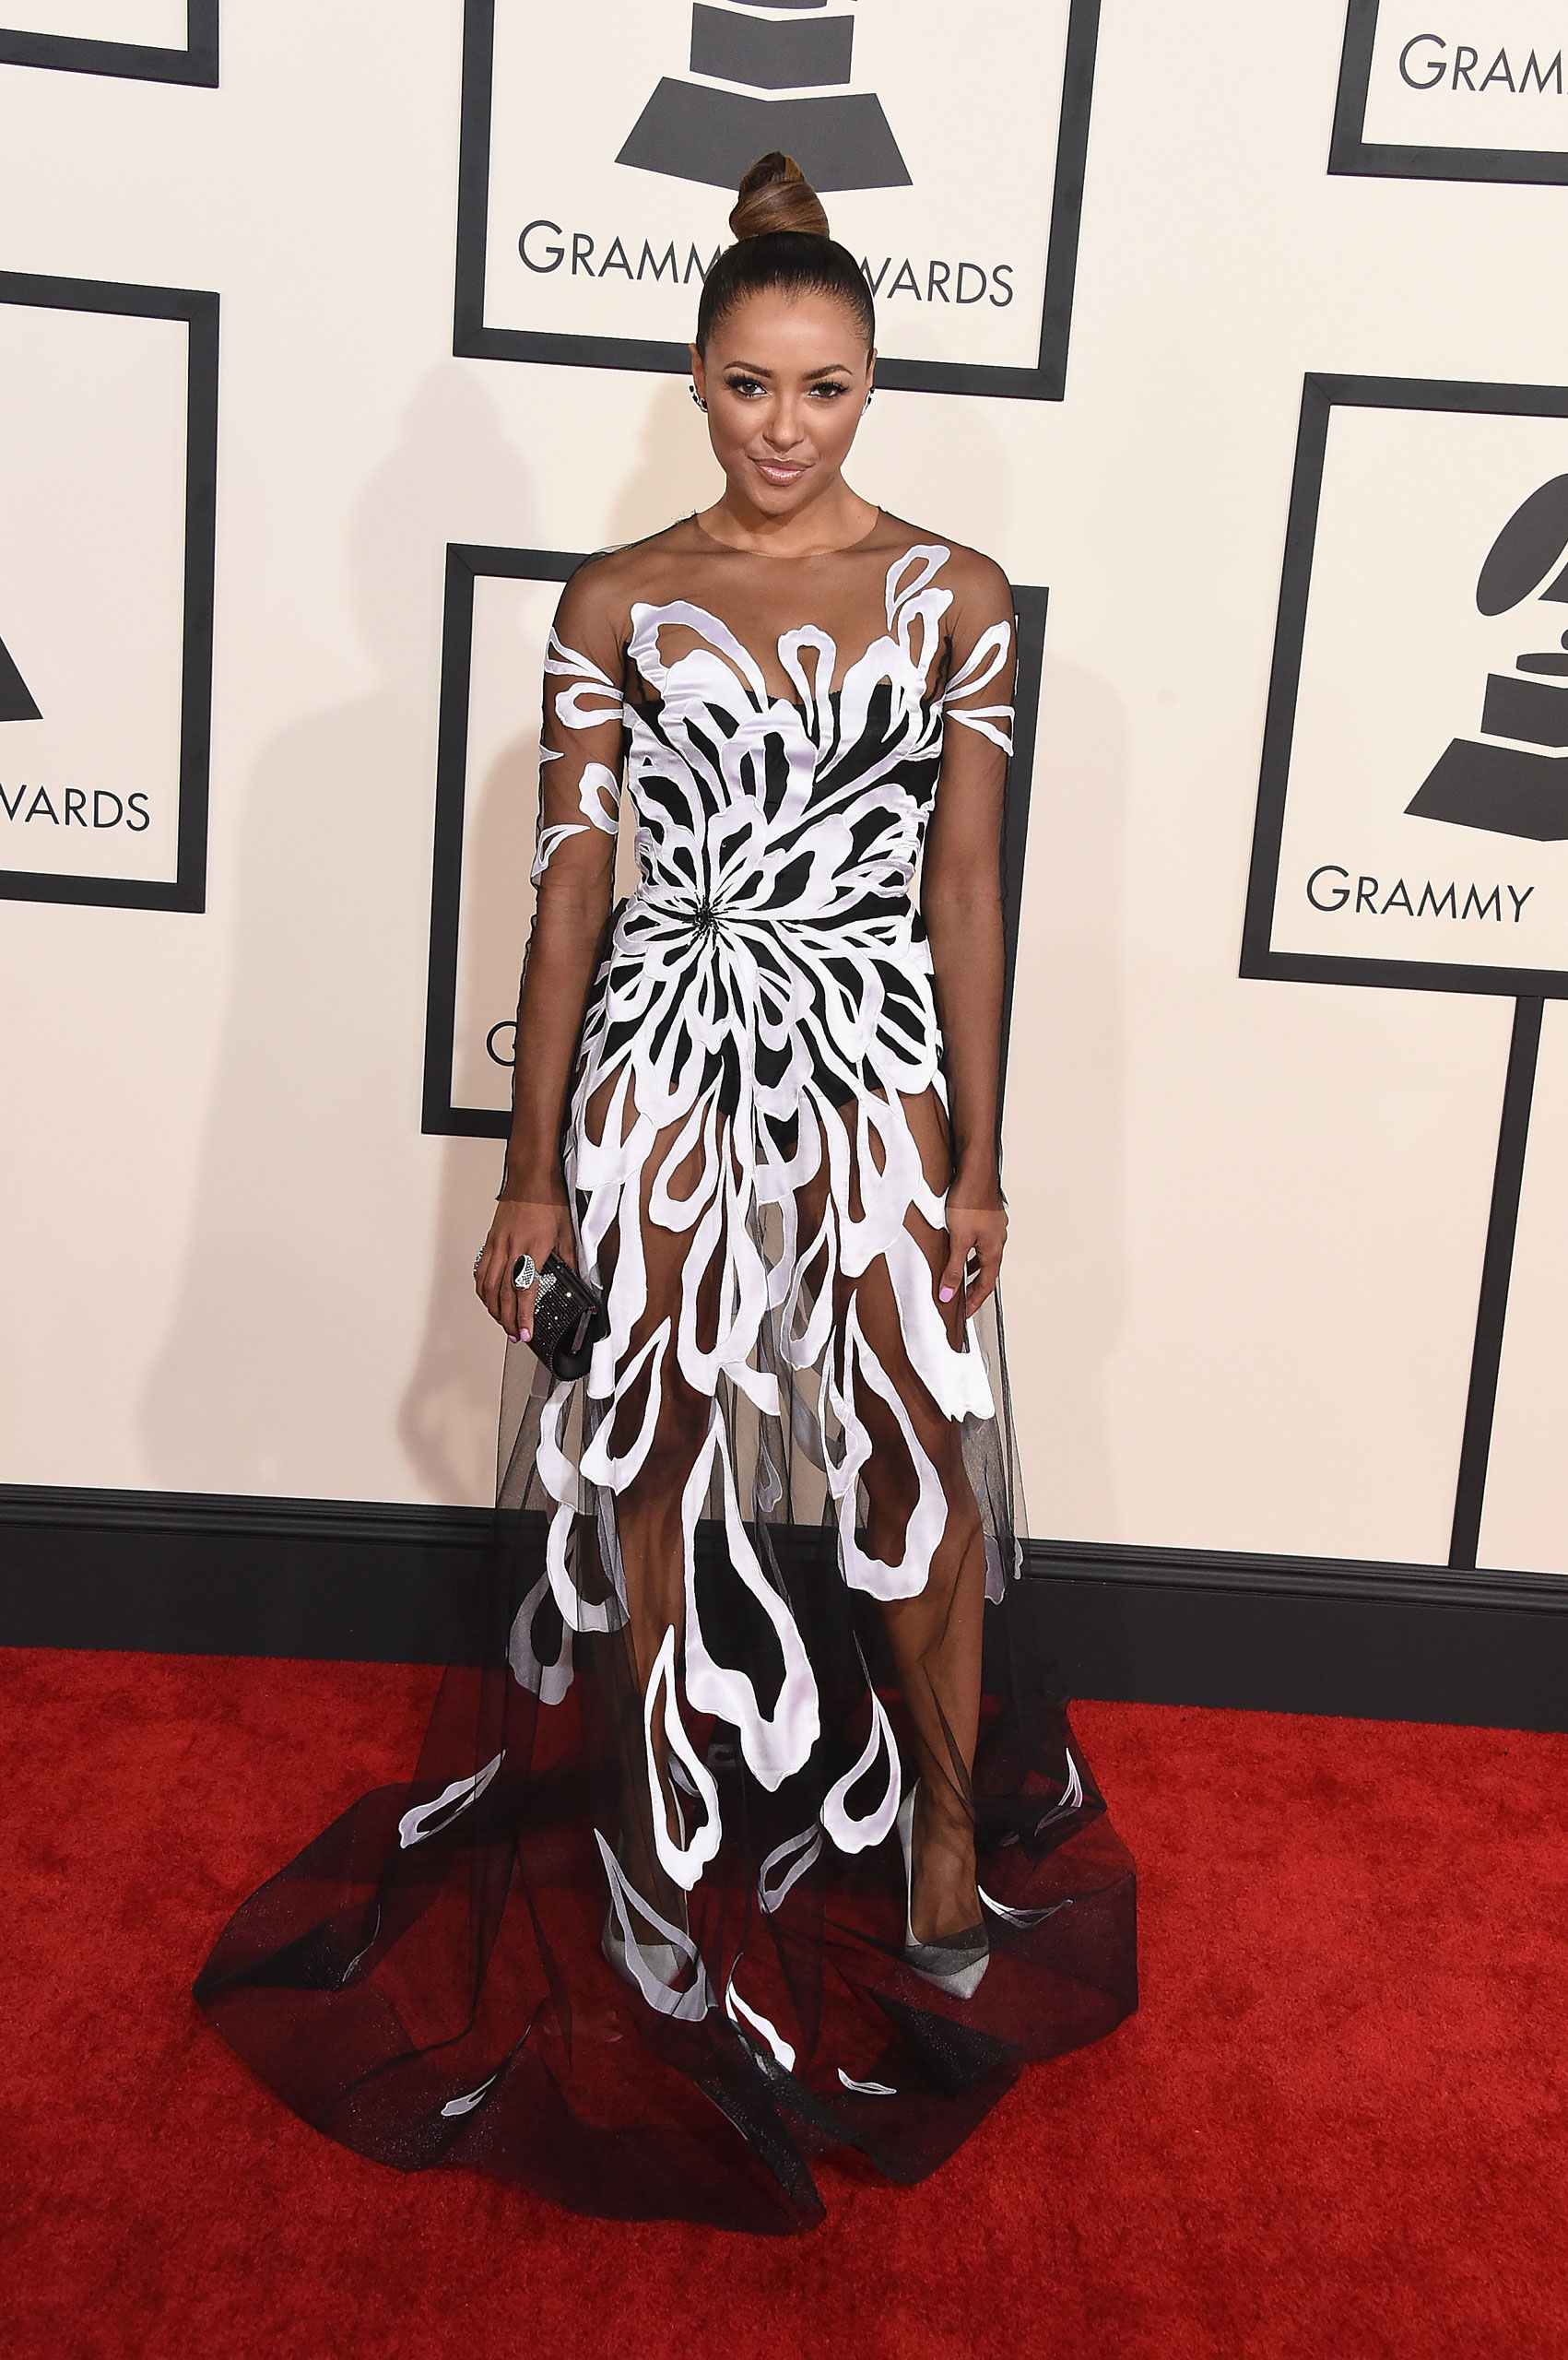 Kat Graham attends the 57th Annual Grammy Awards at the Staples Center on Feb. 8, 2015 in Los Angeles, Calif.